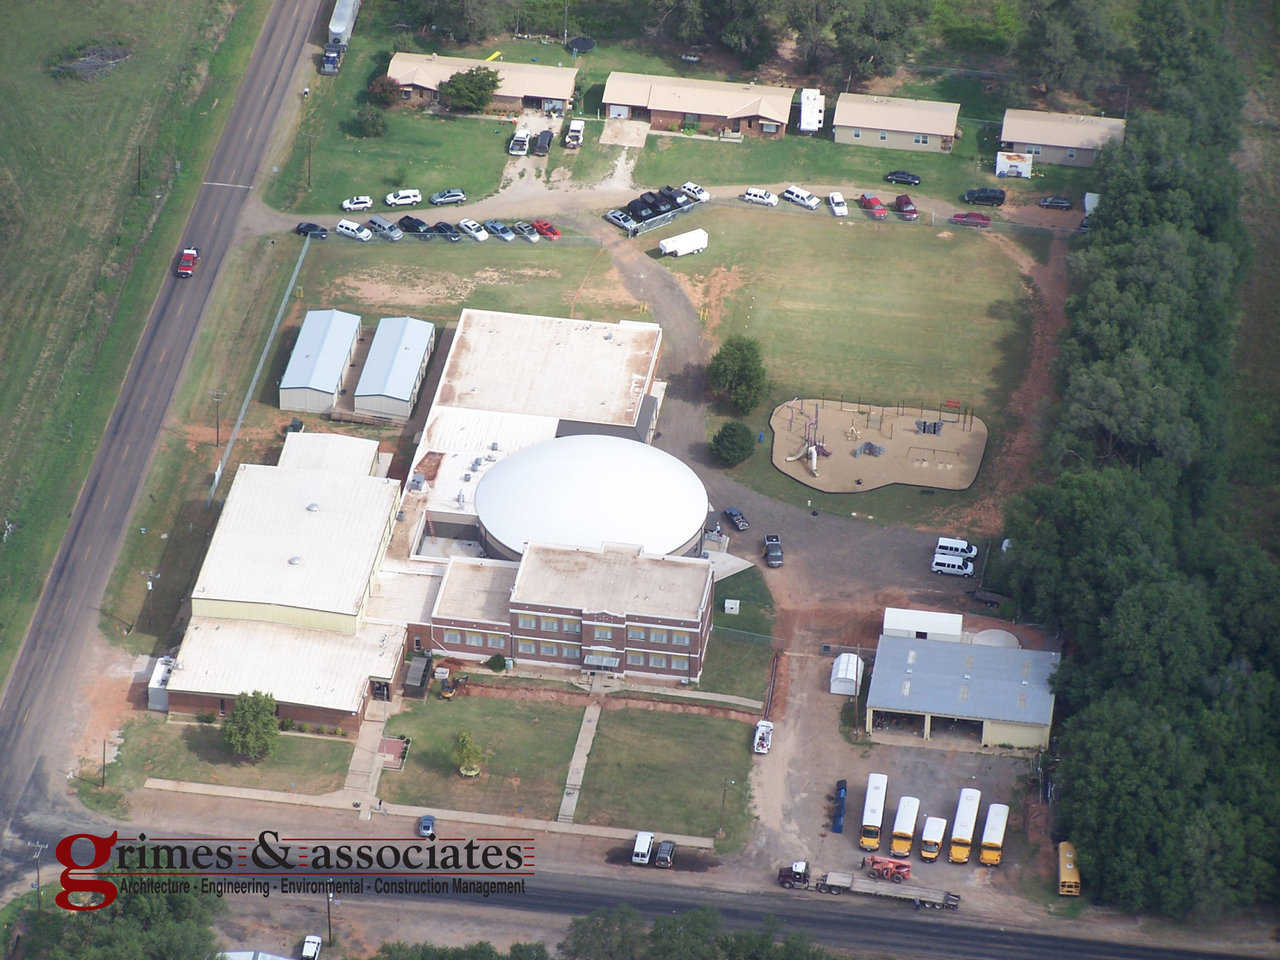 Aerial View — Kelton ISD tarted in 1904 with one teacher for all grades, Kelton now has 158 students and a beautiful, 100′ × 34′ Monolithic Dome for Grades 4 through 12.